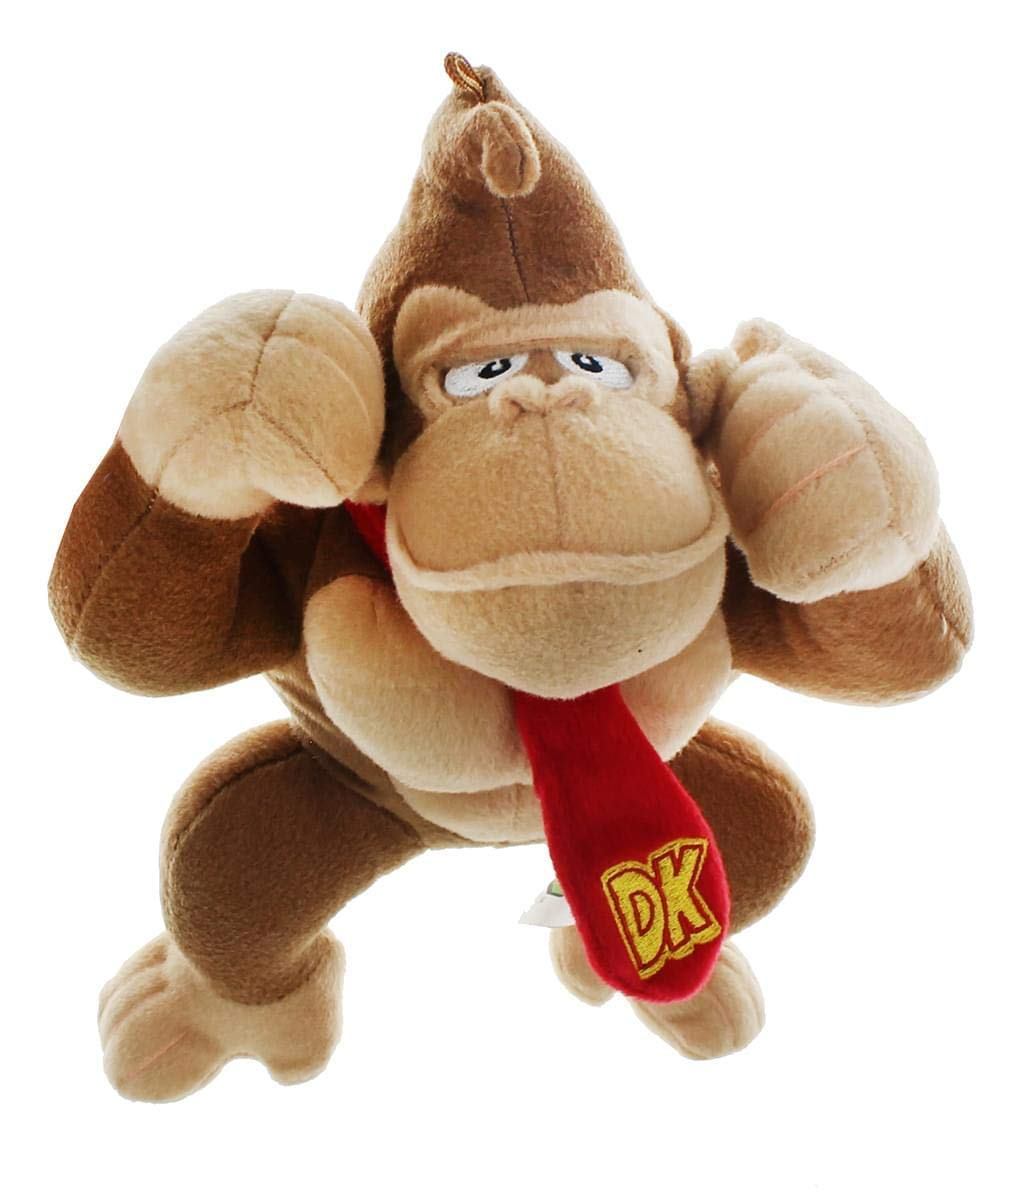 NINTENDO OFFICIAL SUPER MARIO DONKEY KONG 6'' PLUSH by NINTENDO